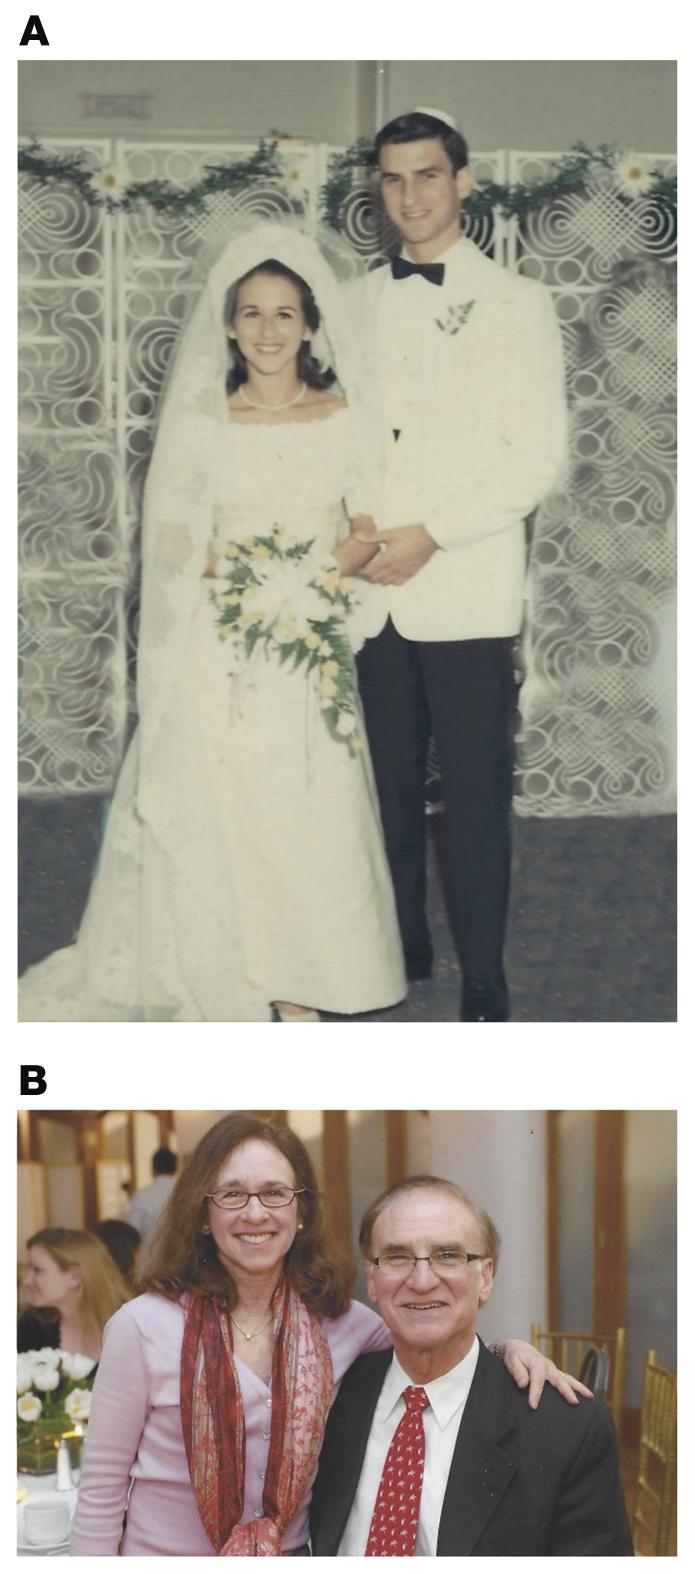 (A) The wedding of Ron and Suzi in 1966. (B) Ron and Suzi in 2019.